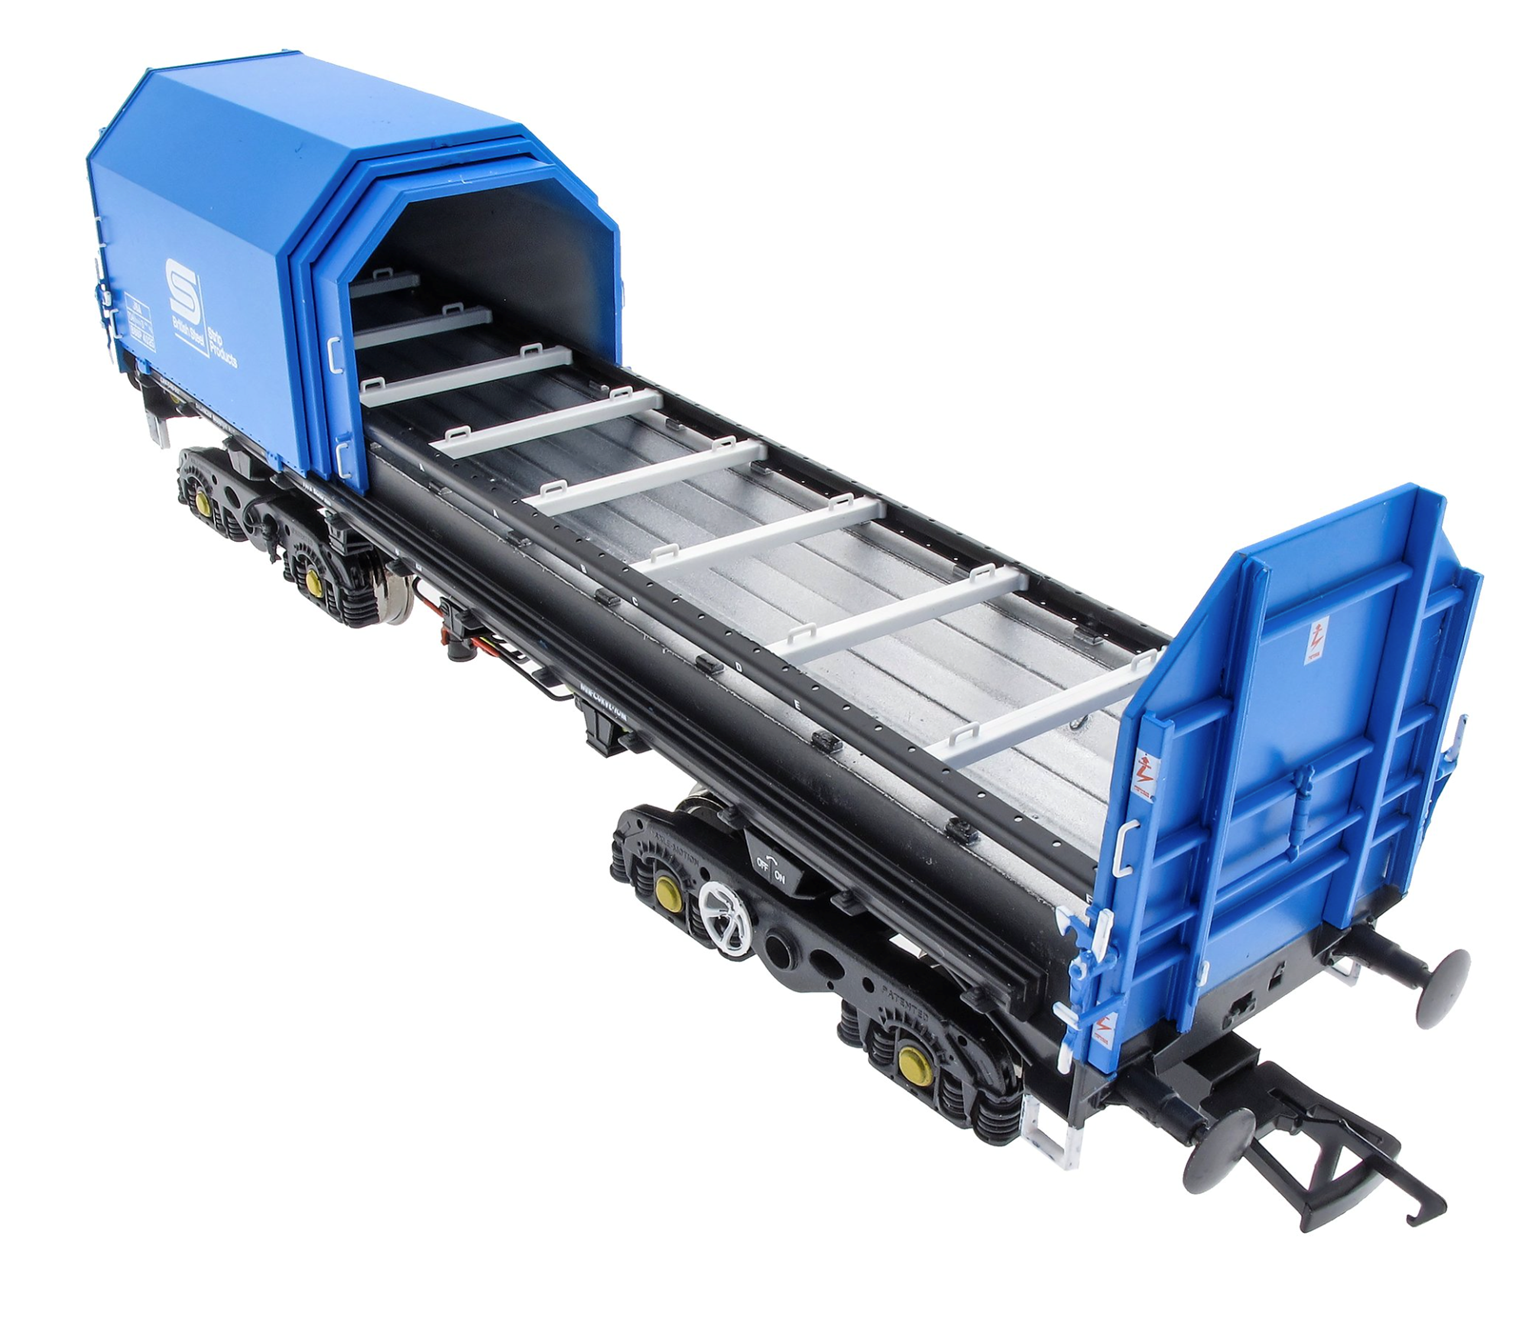 JSA Bogie Covered Steel Wagon Twin Pack - British Steel 2 - BSSP 4036, BSSP 4048